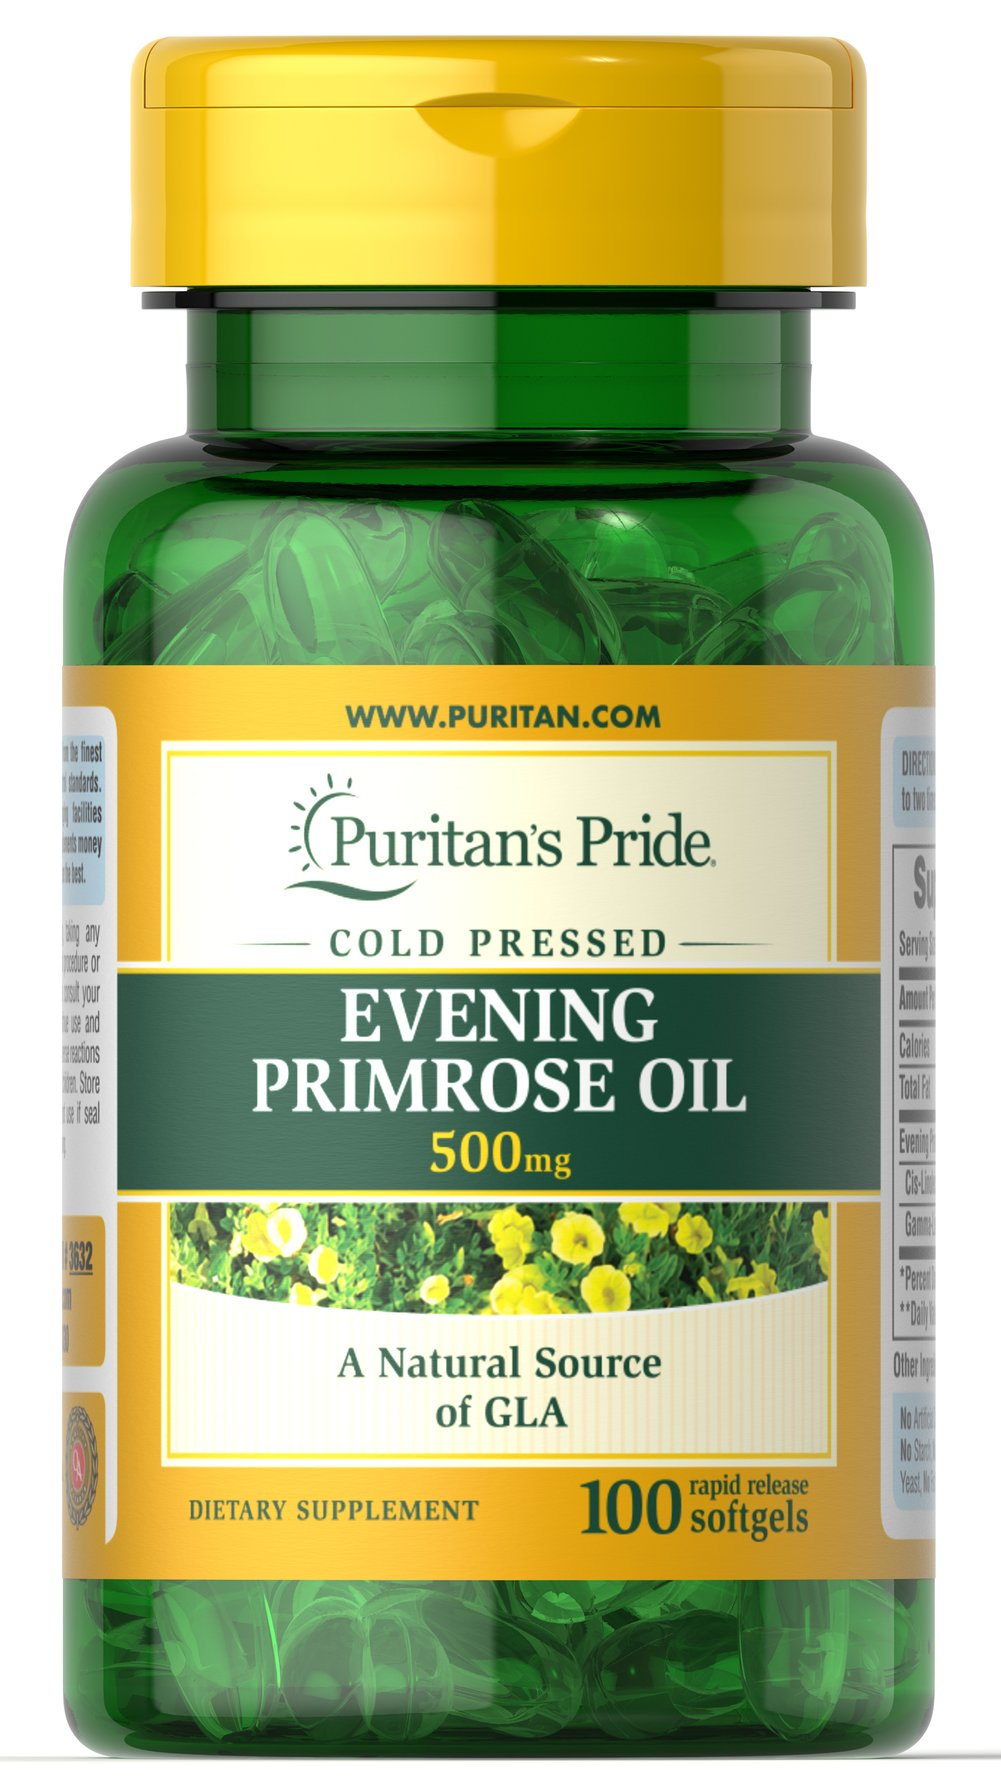 Evening Primrose Oil 500 mg with GLA Thumbnail Alternate Bottle View